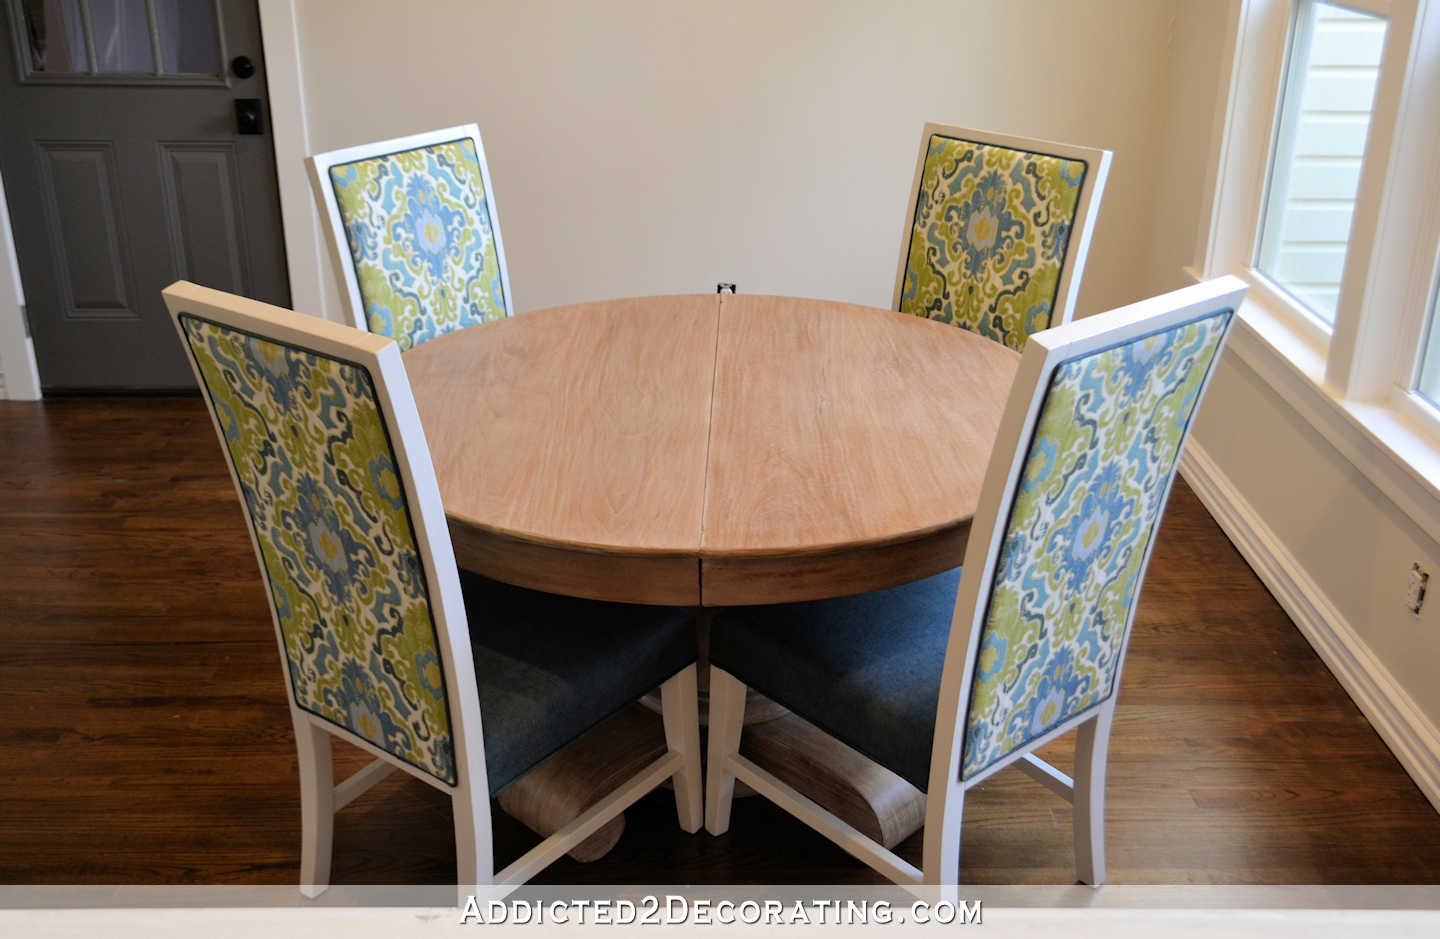 breakfast room dining table makeover - refinished table with new dining chairs